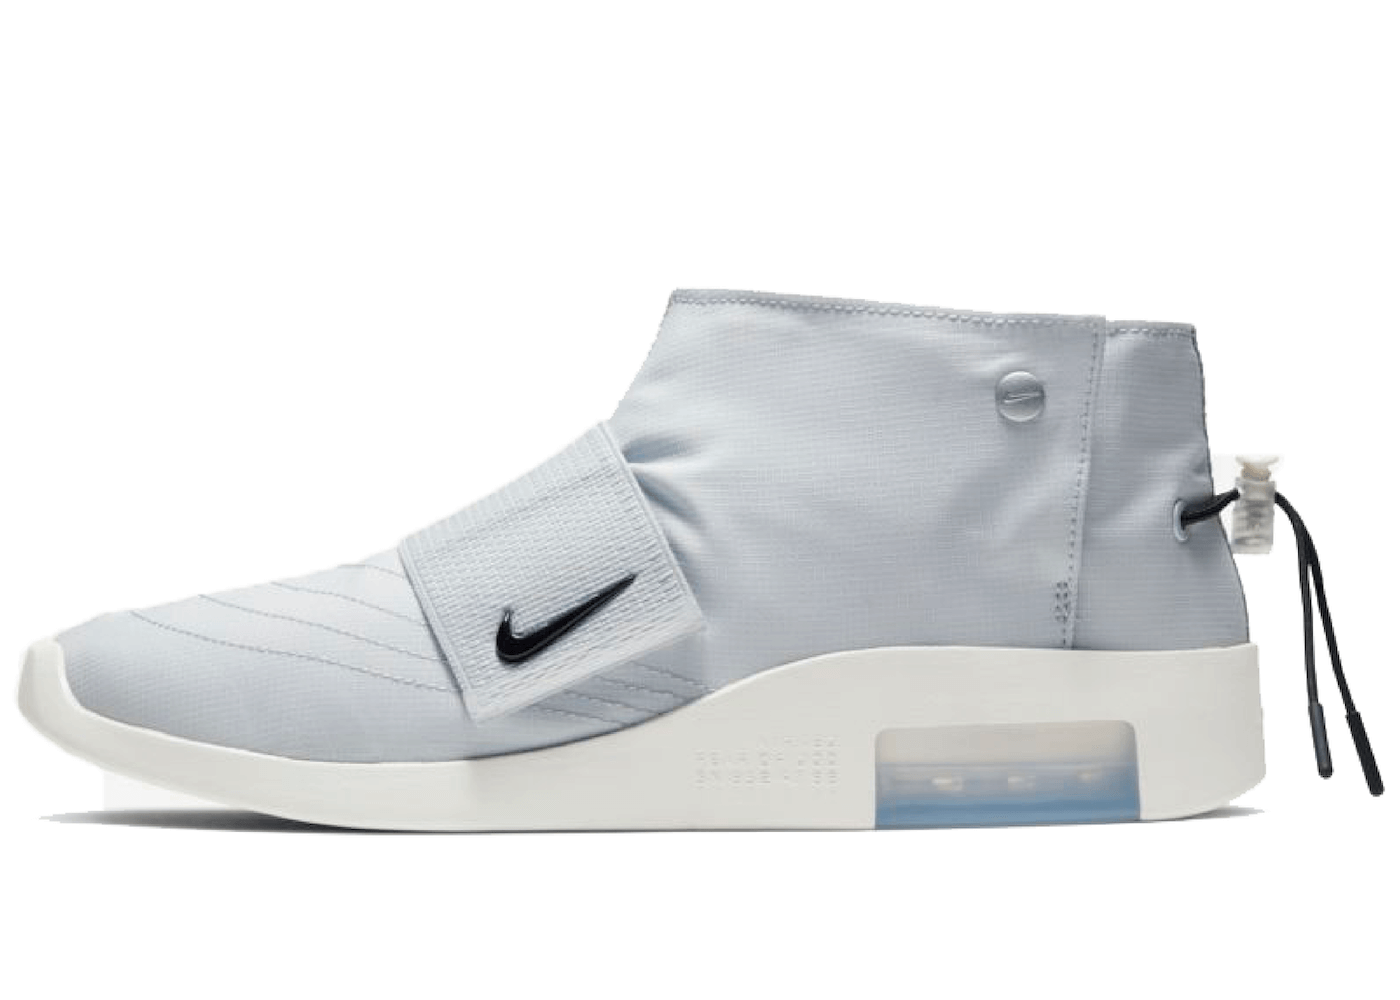 Nike Air Fear Of God Moccasin Pure Platinumの写真